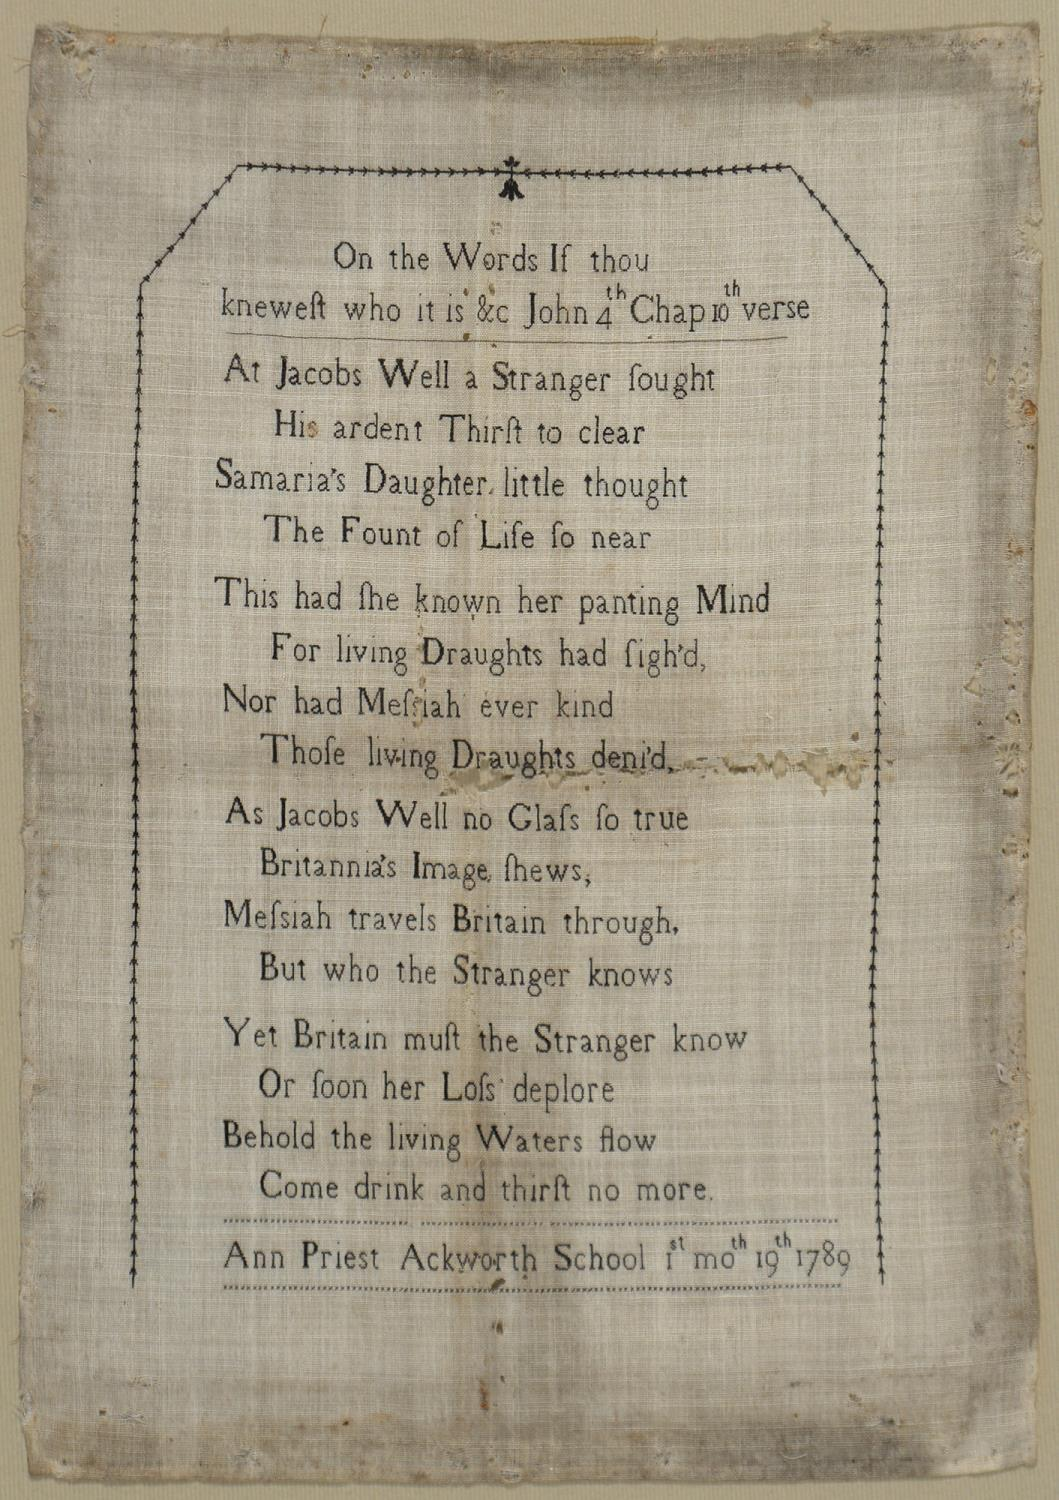 AN EARLY ACKWORTH SCHOOL QUAKER SAMPLER ANN PRIEST 1ST MO.TH 19TH, 1789,WORKED IN BLACK WITH ON